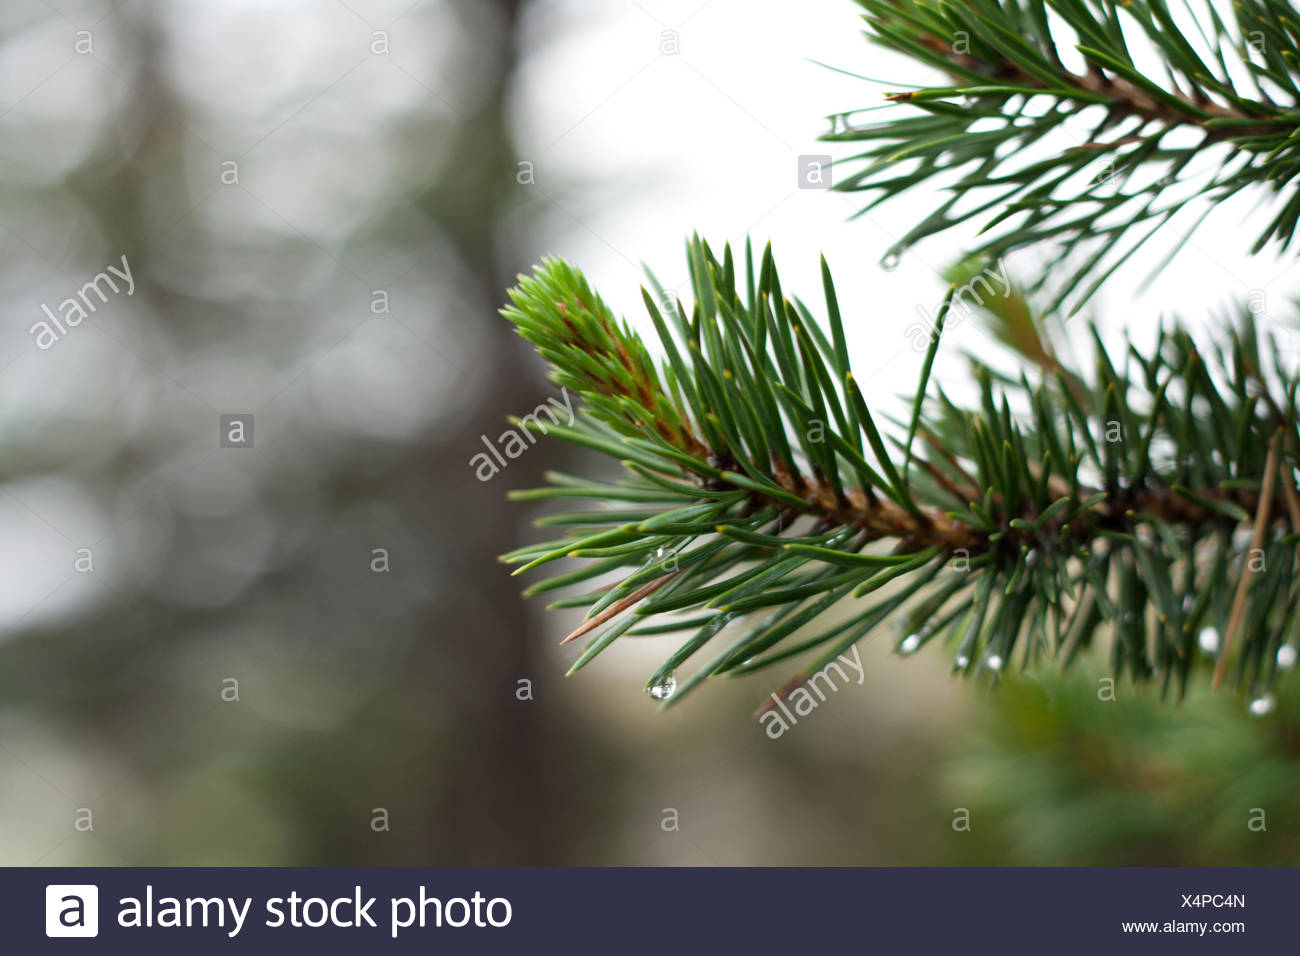 Branch of the pine - Stock Image